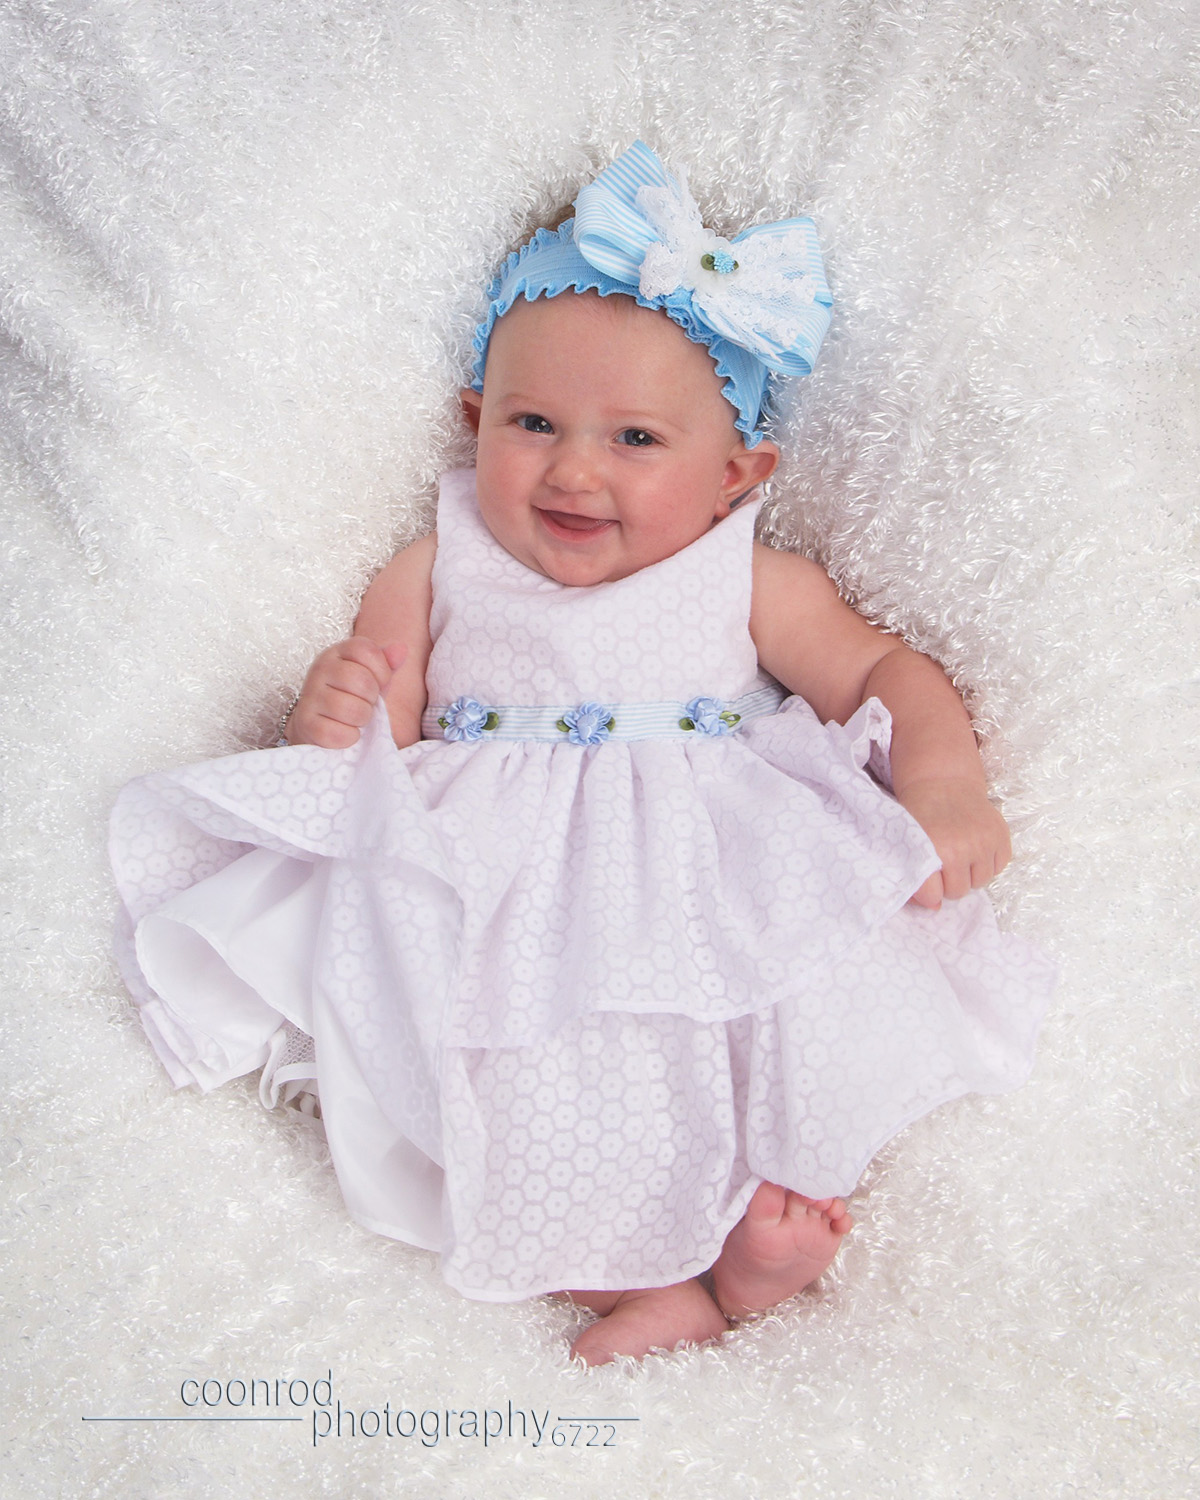 At  3 months , baby is responding to faces, smiling and laughing